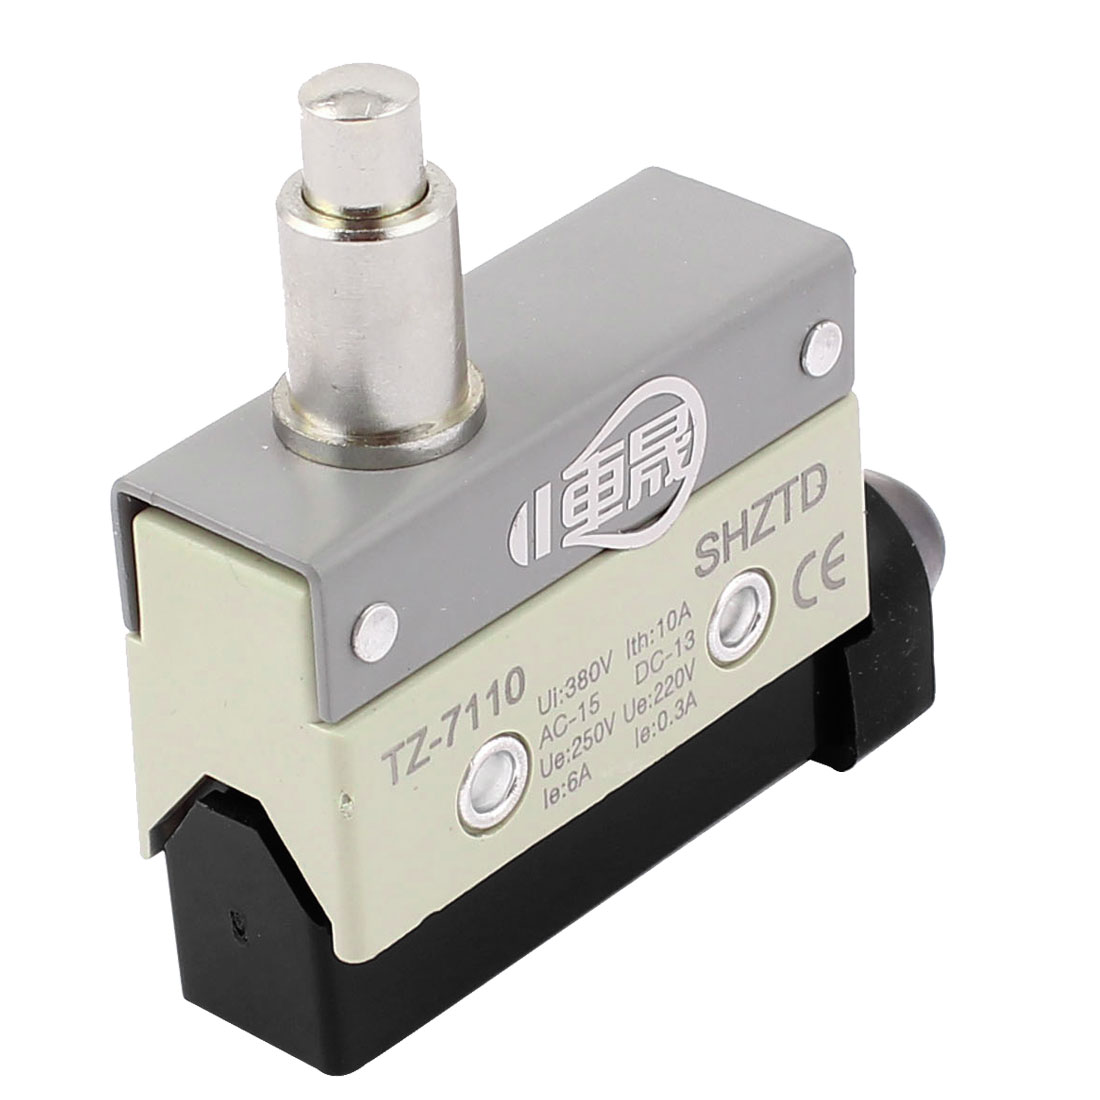 TZ-7110 AC 380V 10A SPDT 1NO+1NC Snap Action Plunger Limit Switch